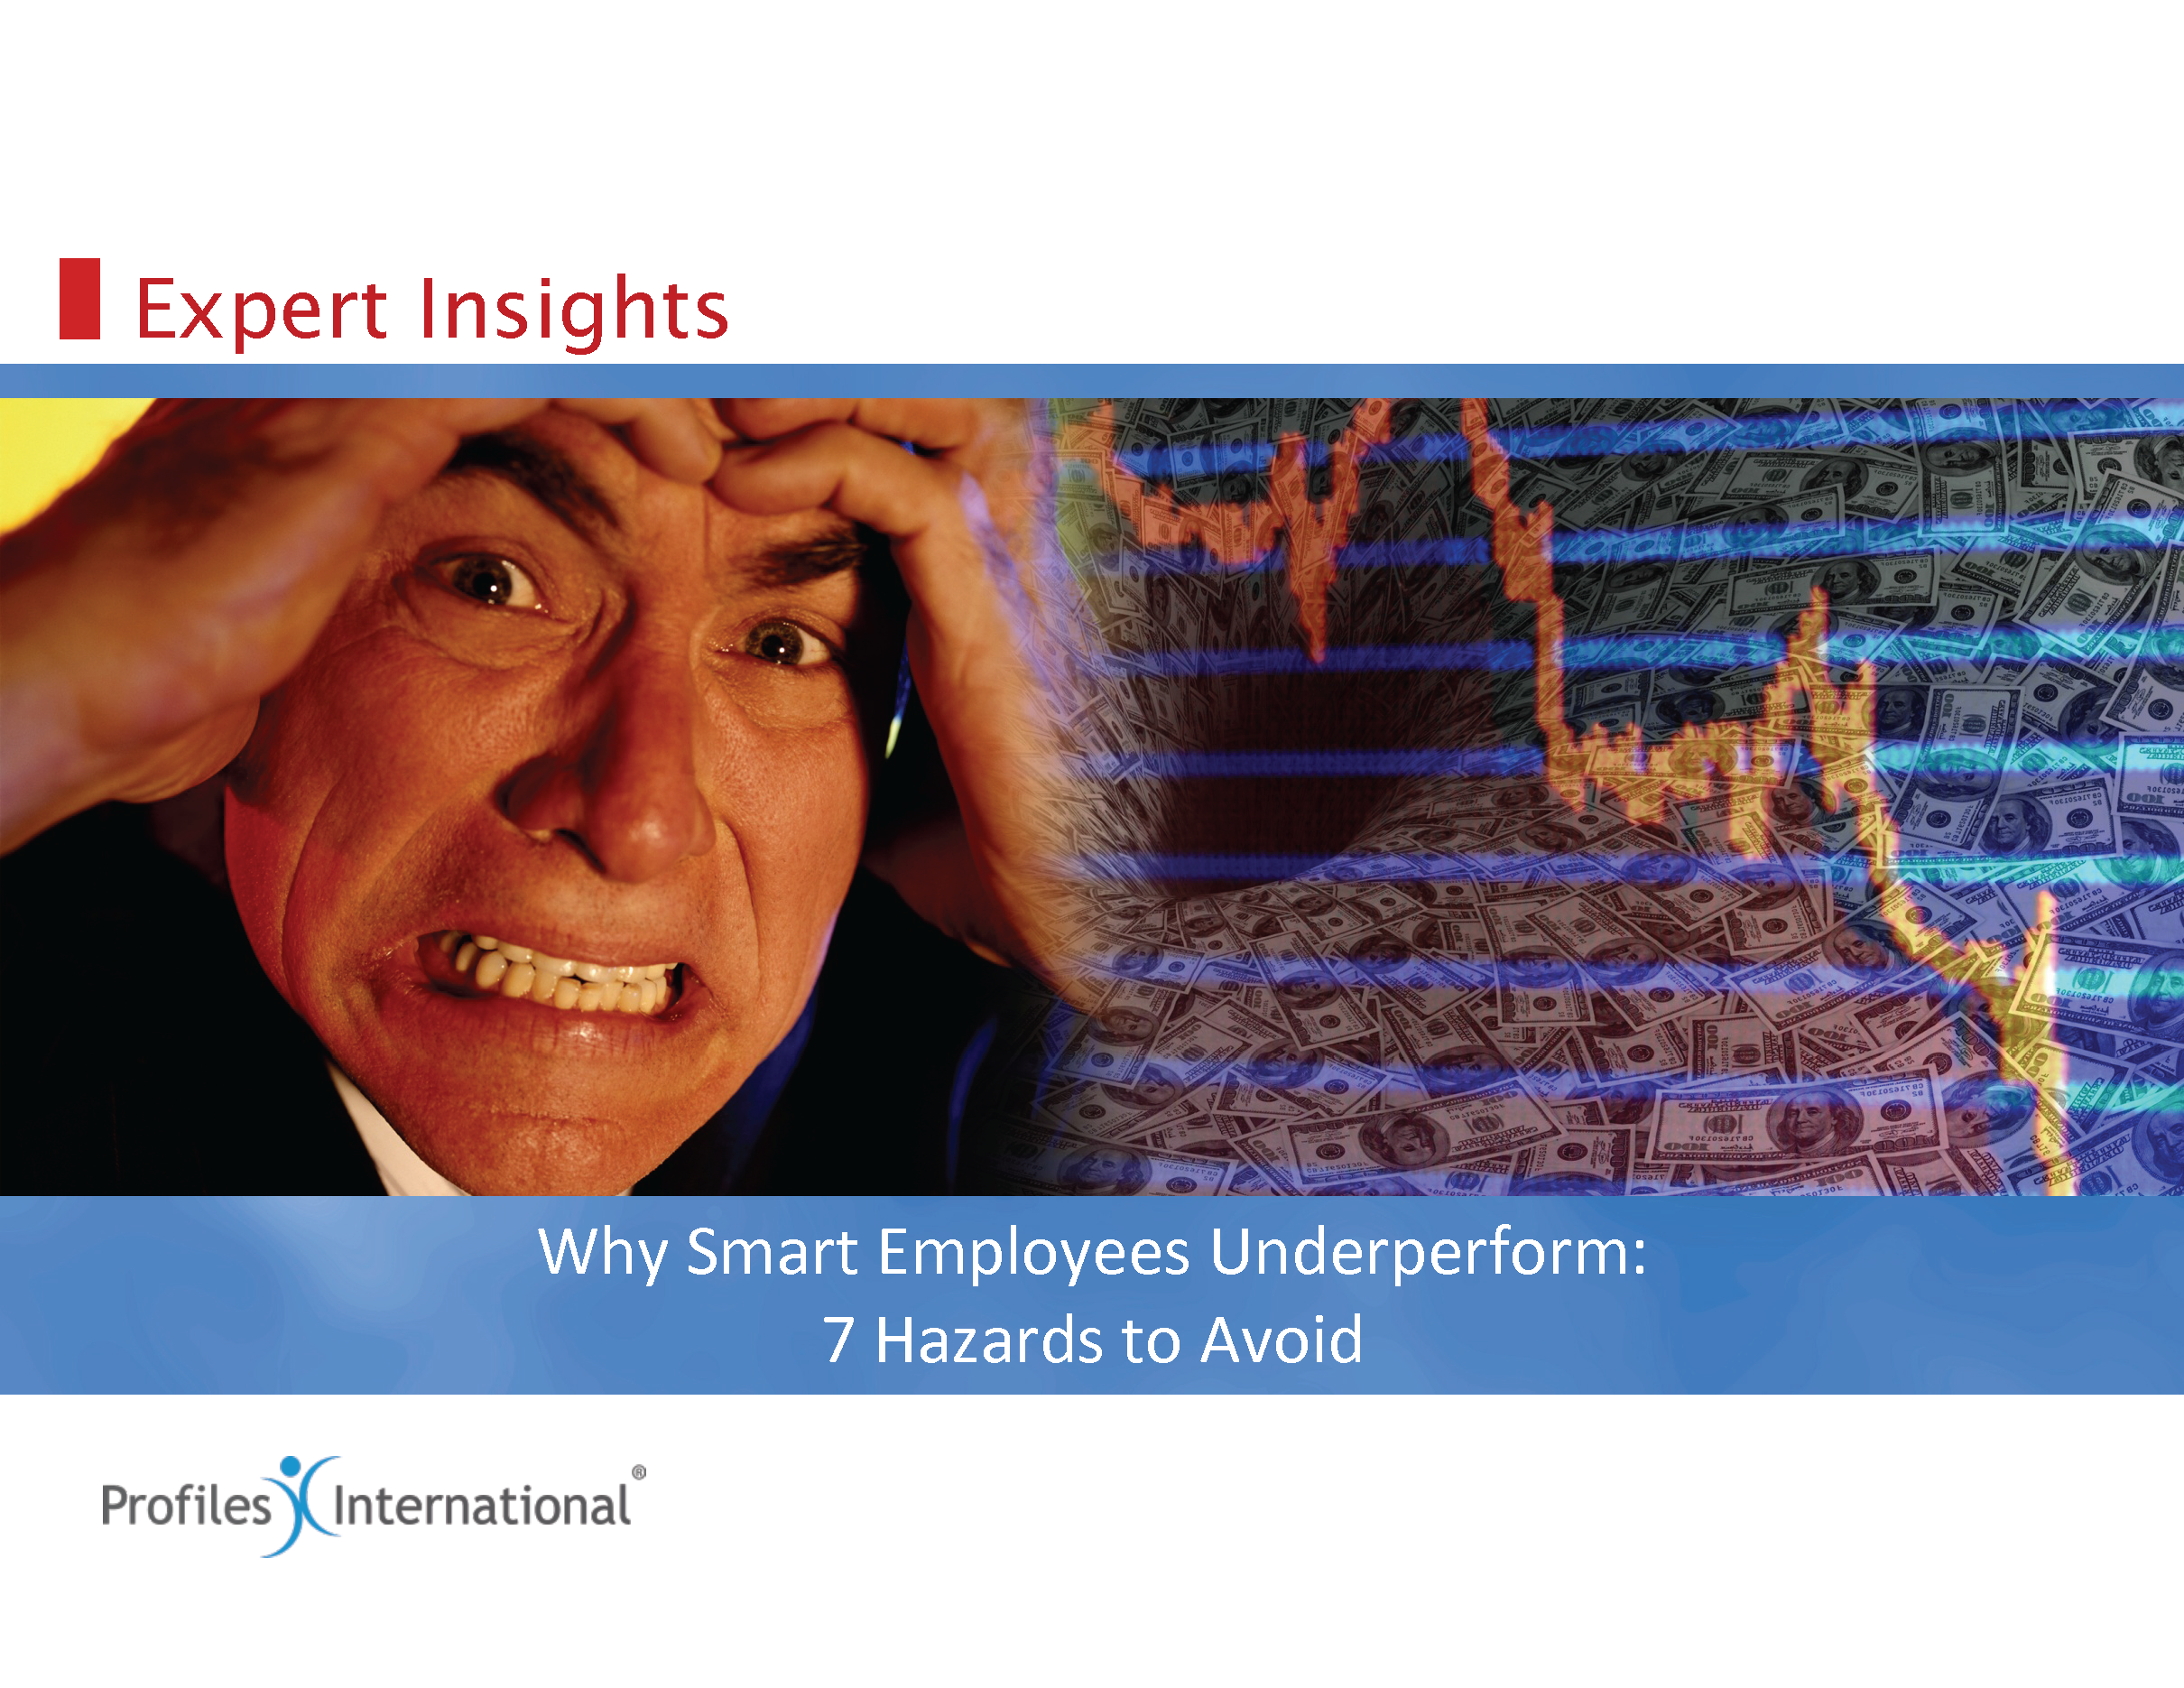 19-Why Smart Employees Underperform